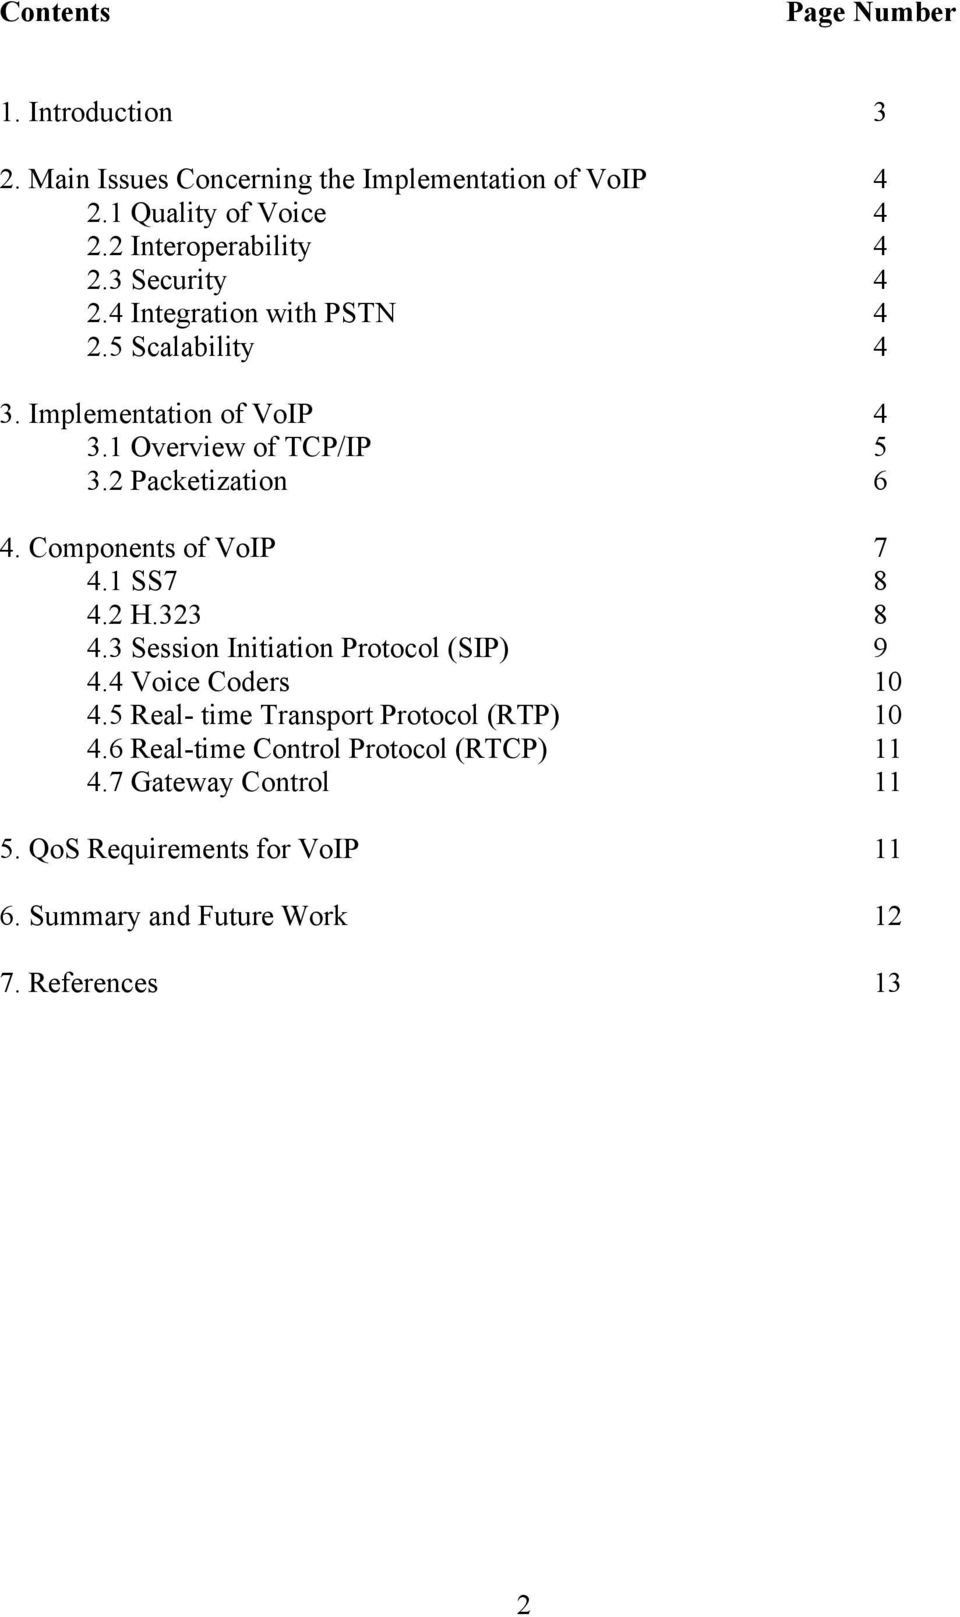 Components of VoIP 7 4.1 SS7 8 4.2 H.323 8 4.3 Session Initiation Protocol (SIP) 9 4.4 Voice Coders 10 4.